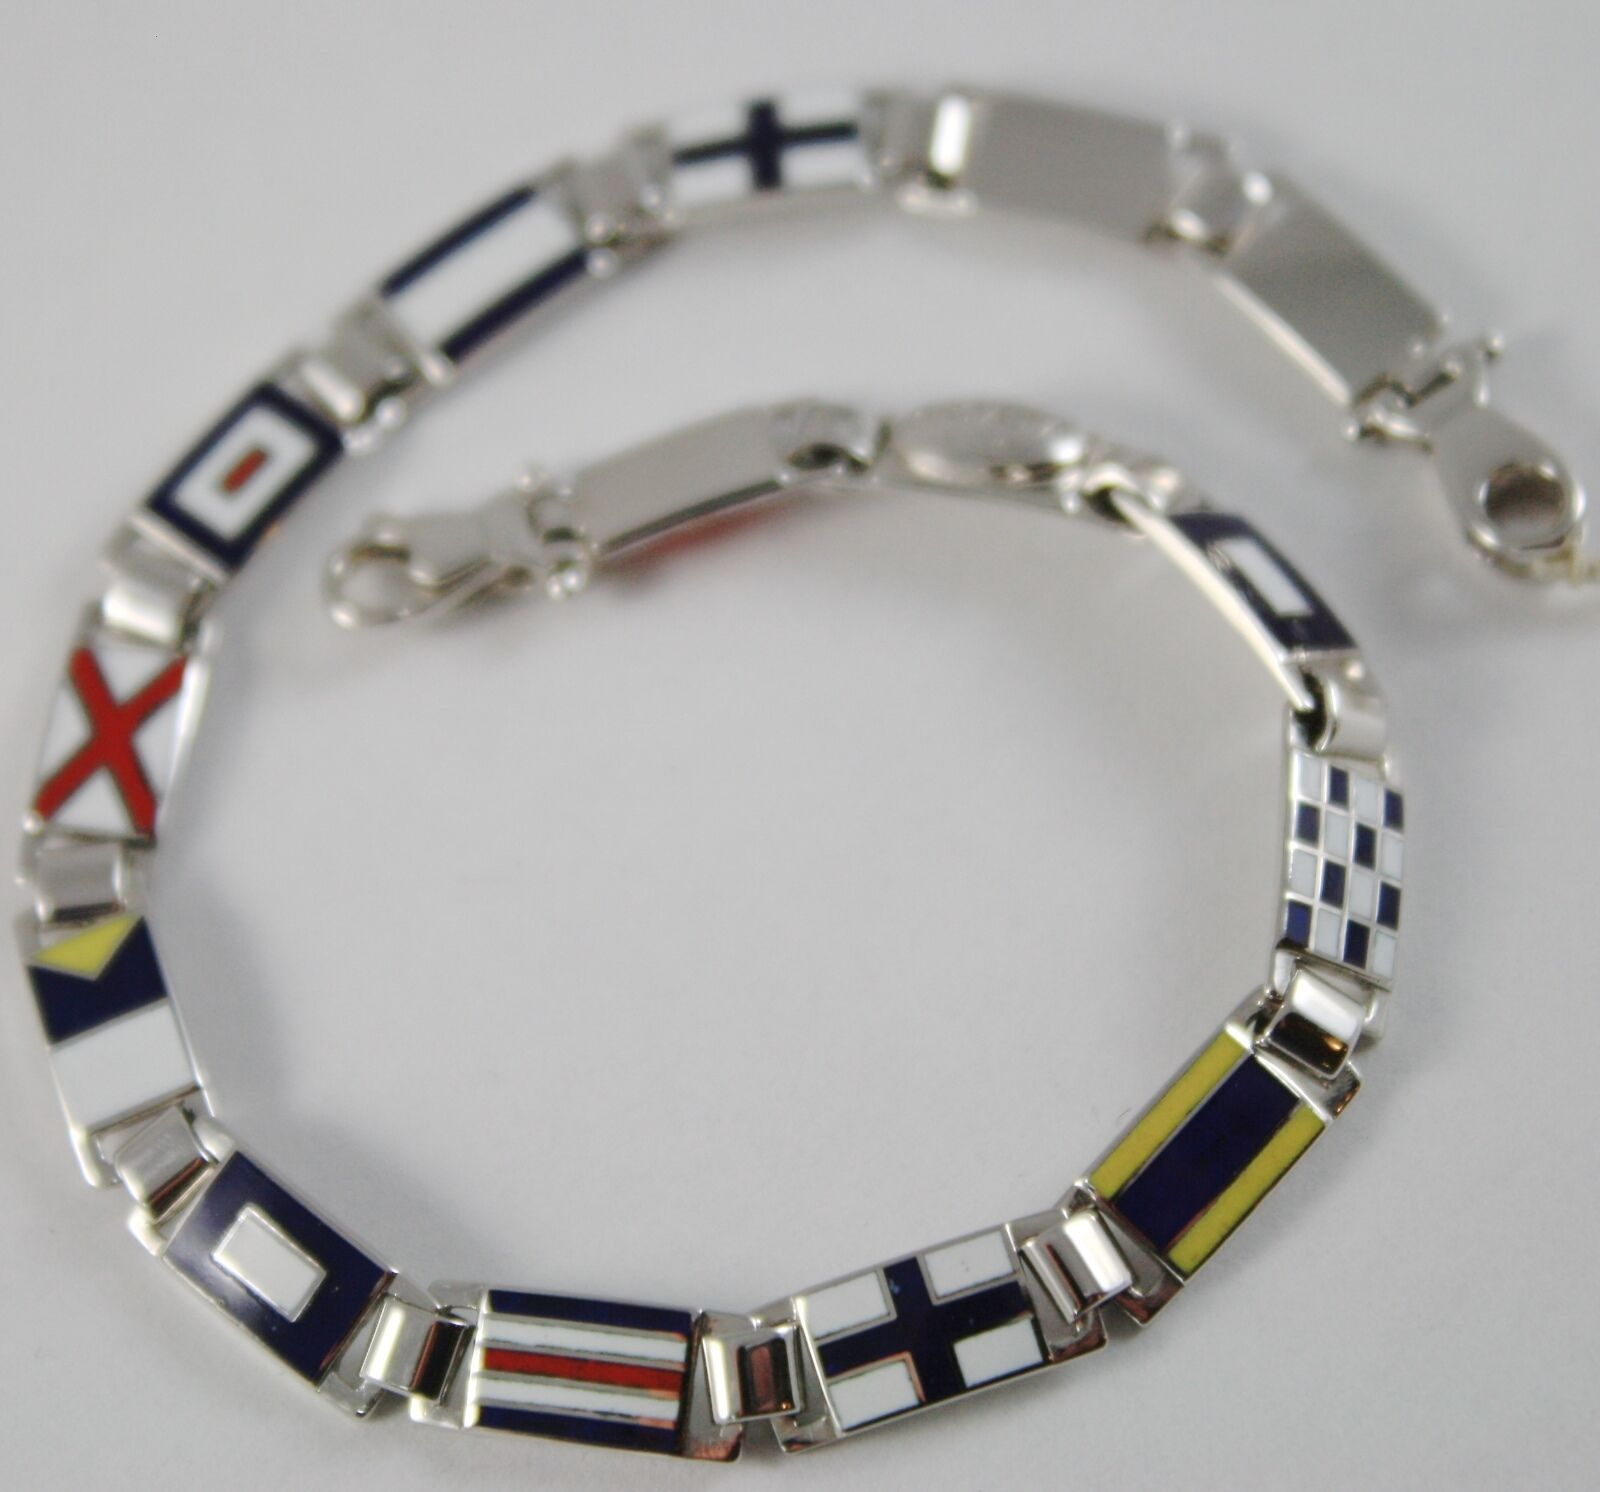 White Gold Bracelet 750 18k, Nautical Flags 5.5 MM, Enamel, Made in Italy